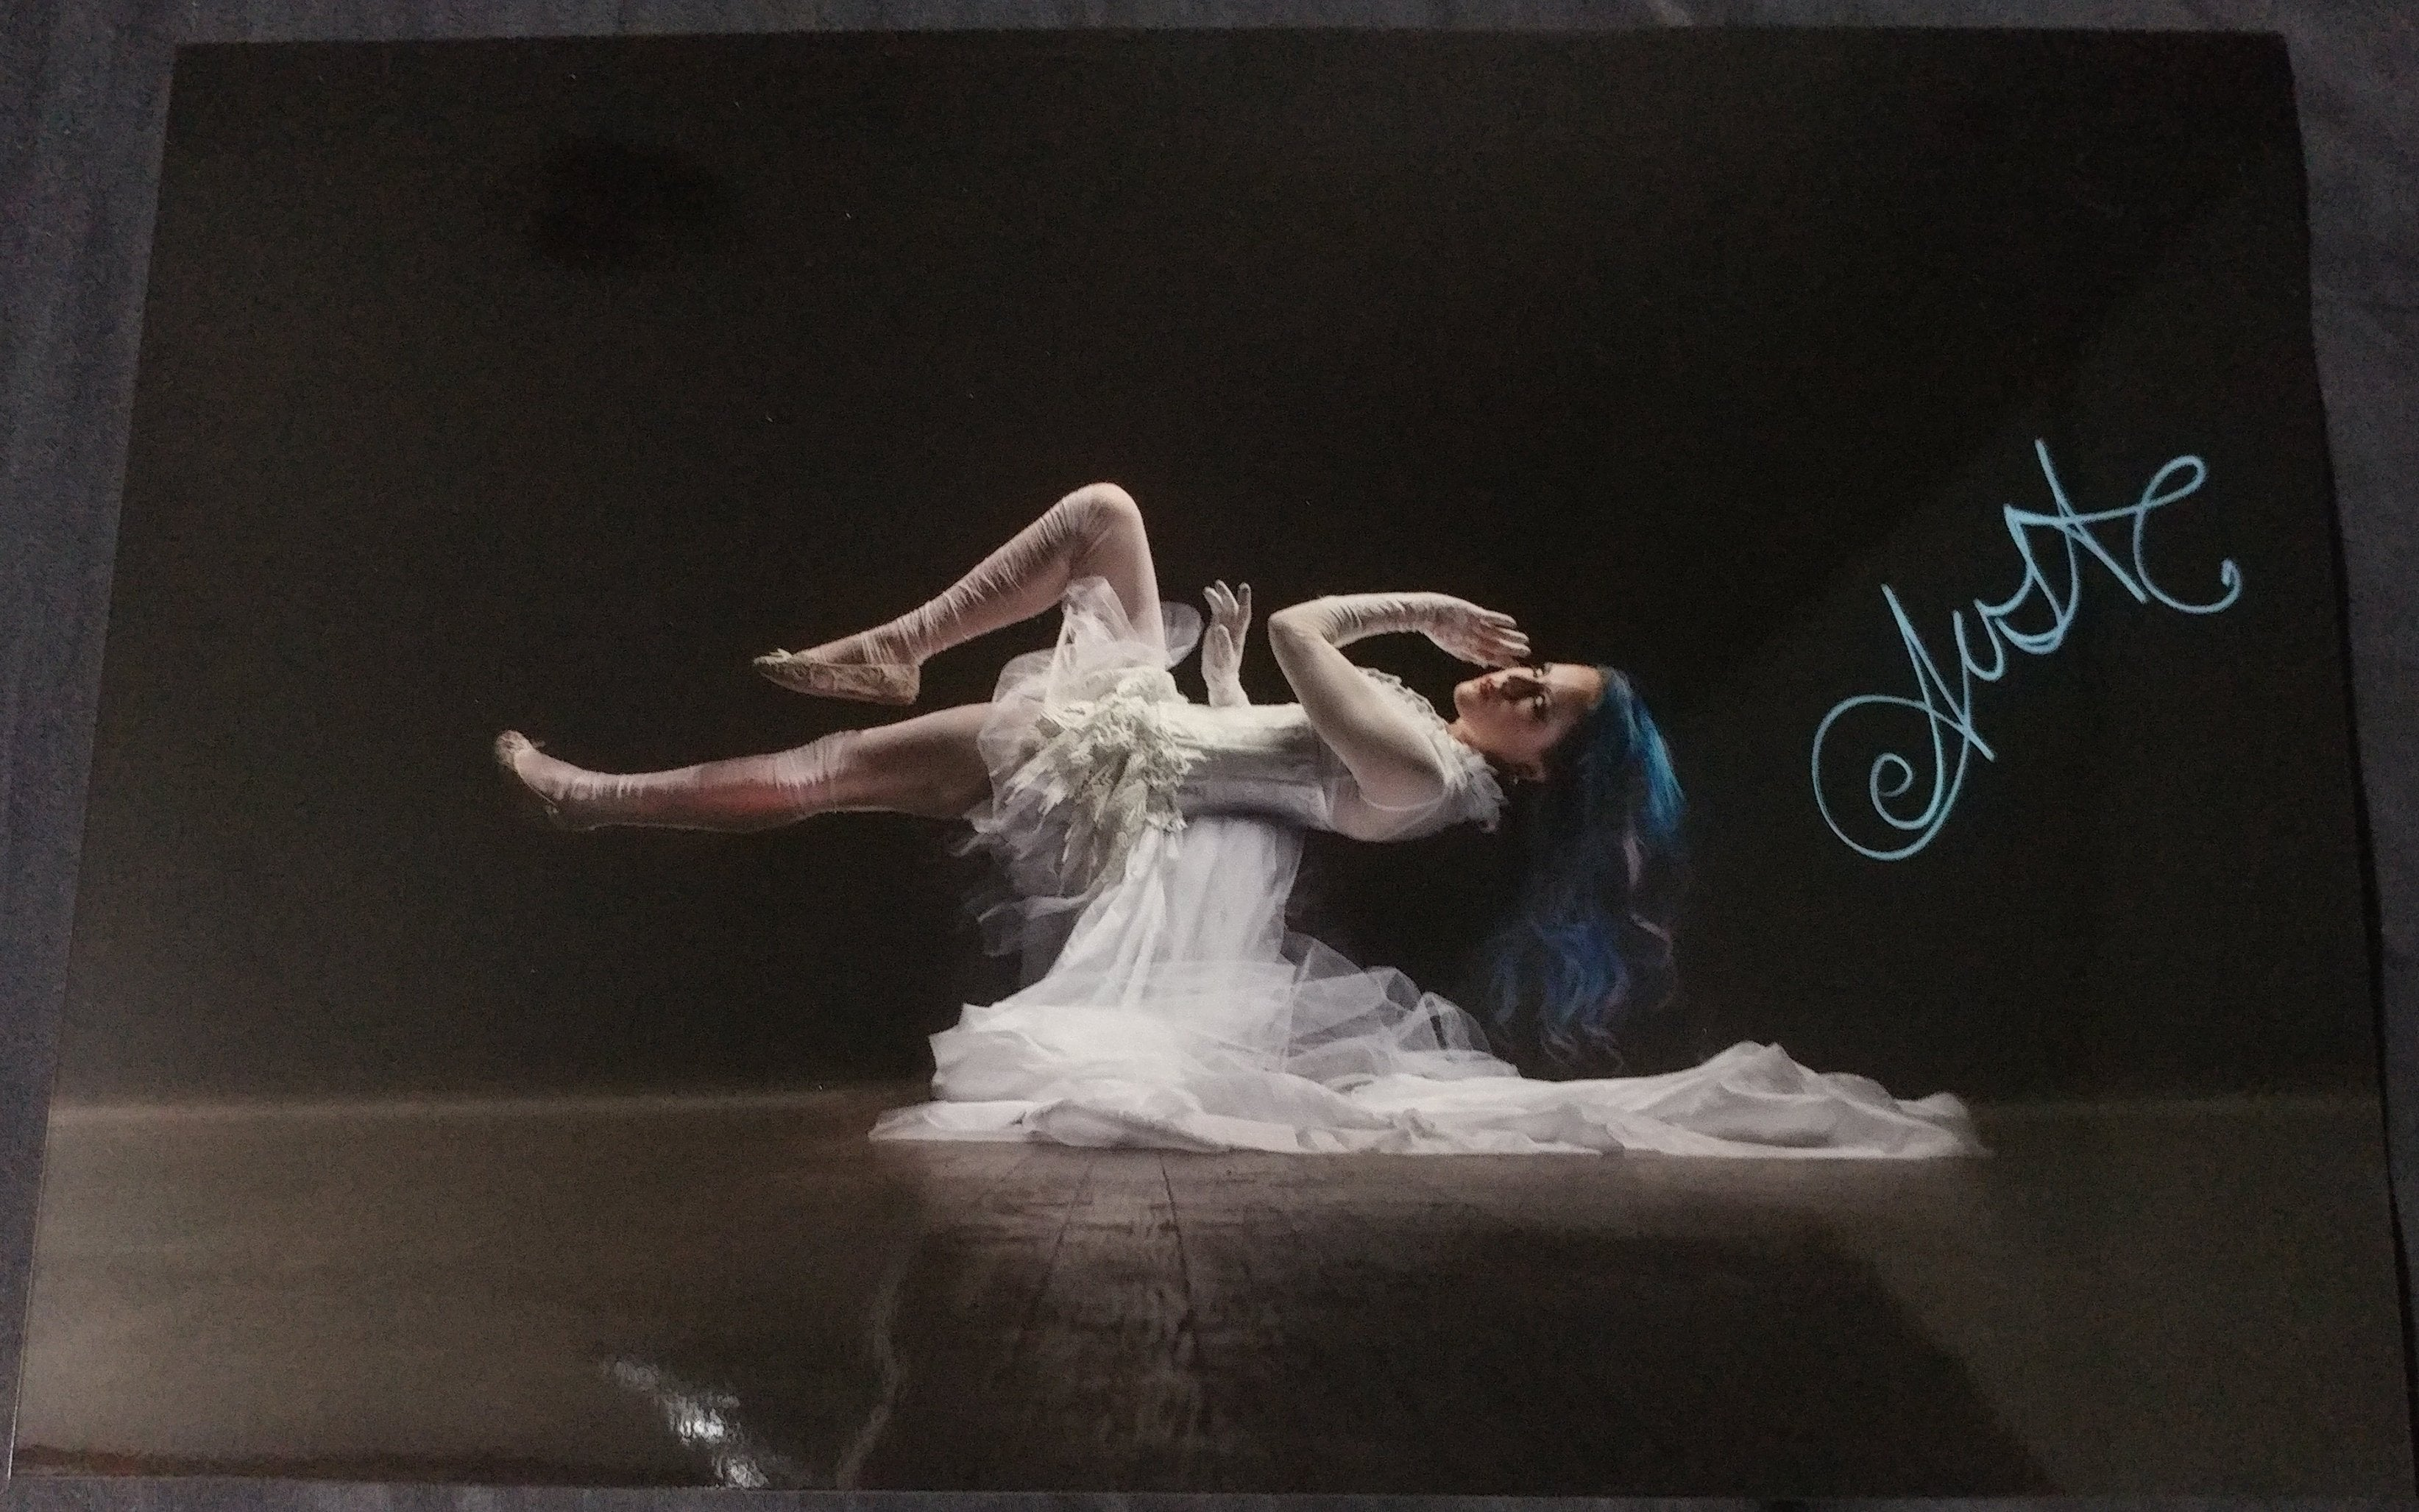 Alissa White-Gluz - Ethereal - Signed Limited Edition Metallic Print